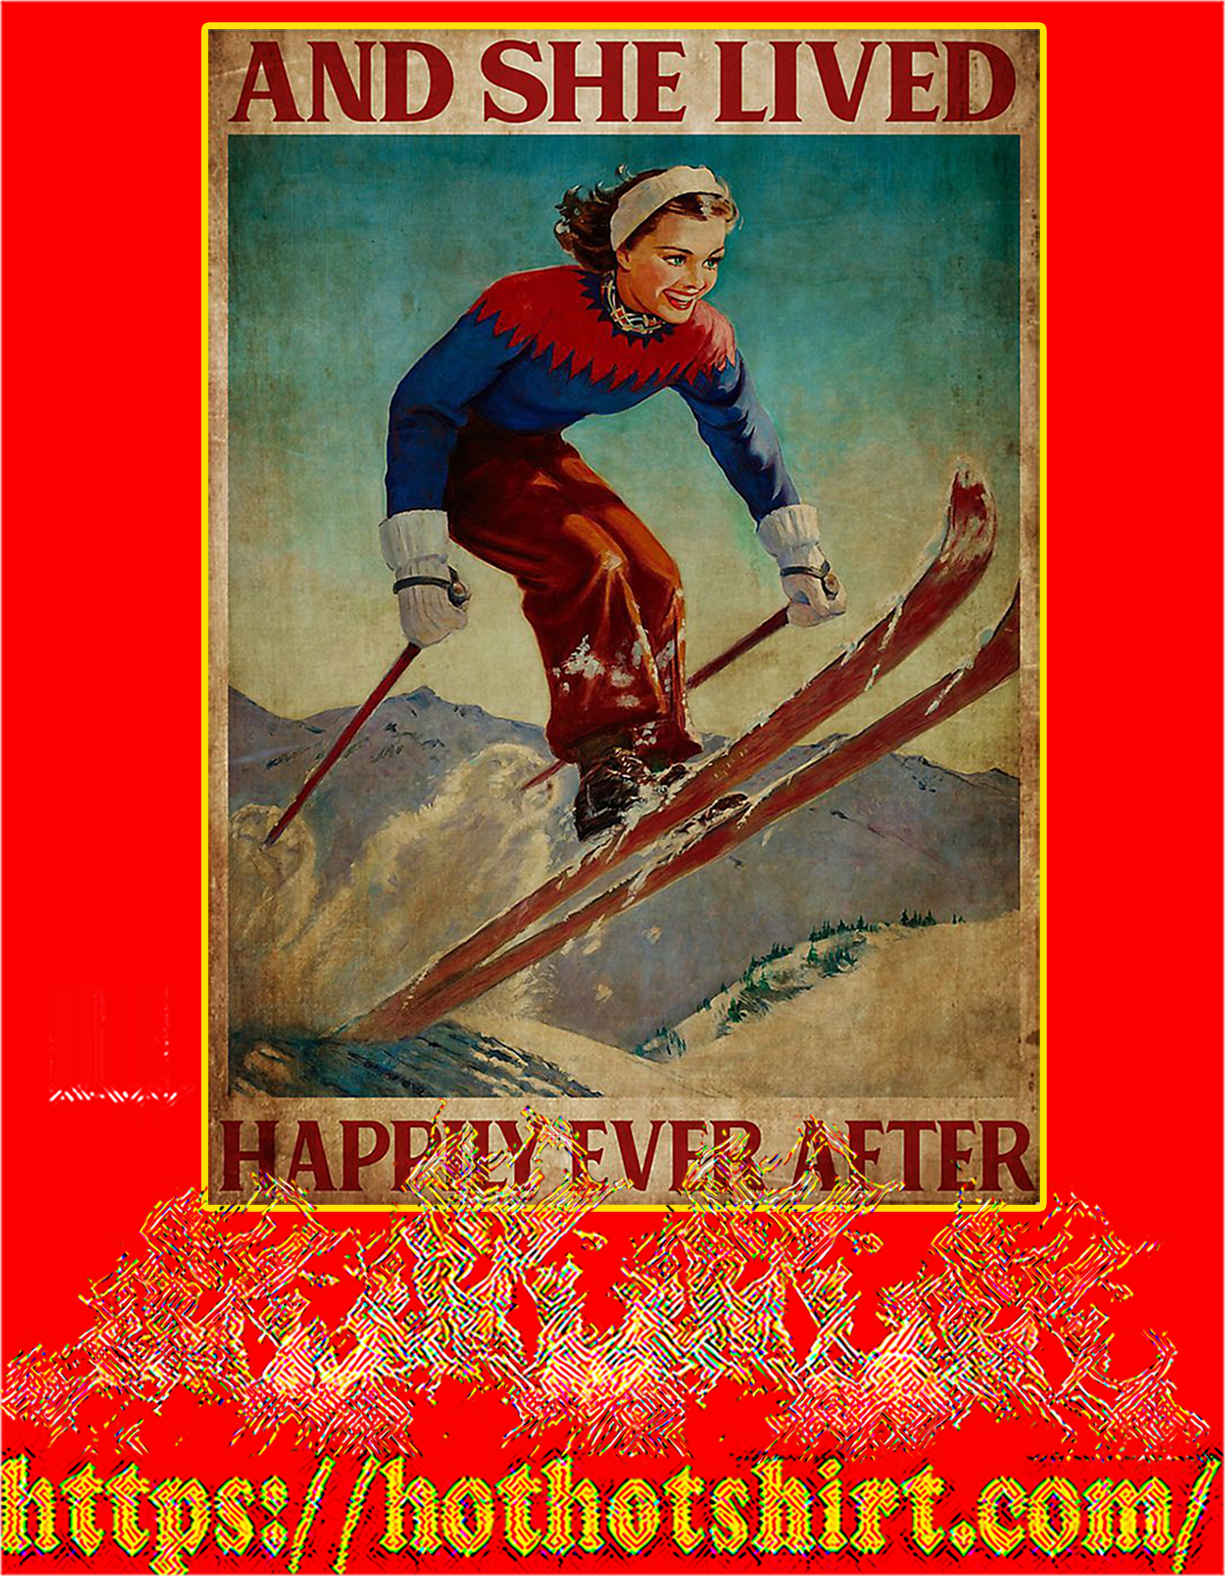 Poster Skiing And she lived happily ever after